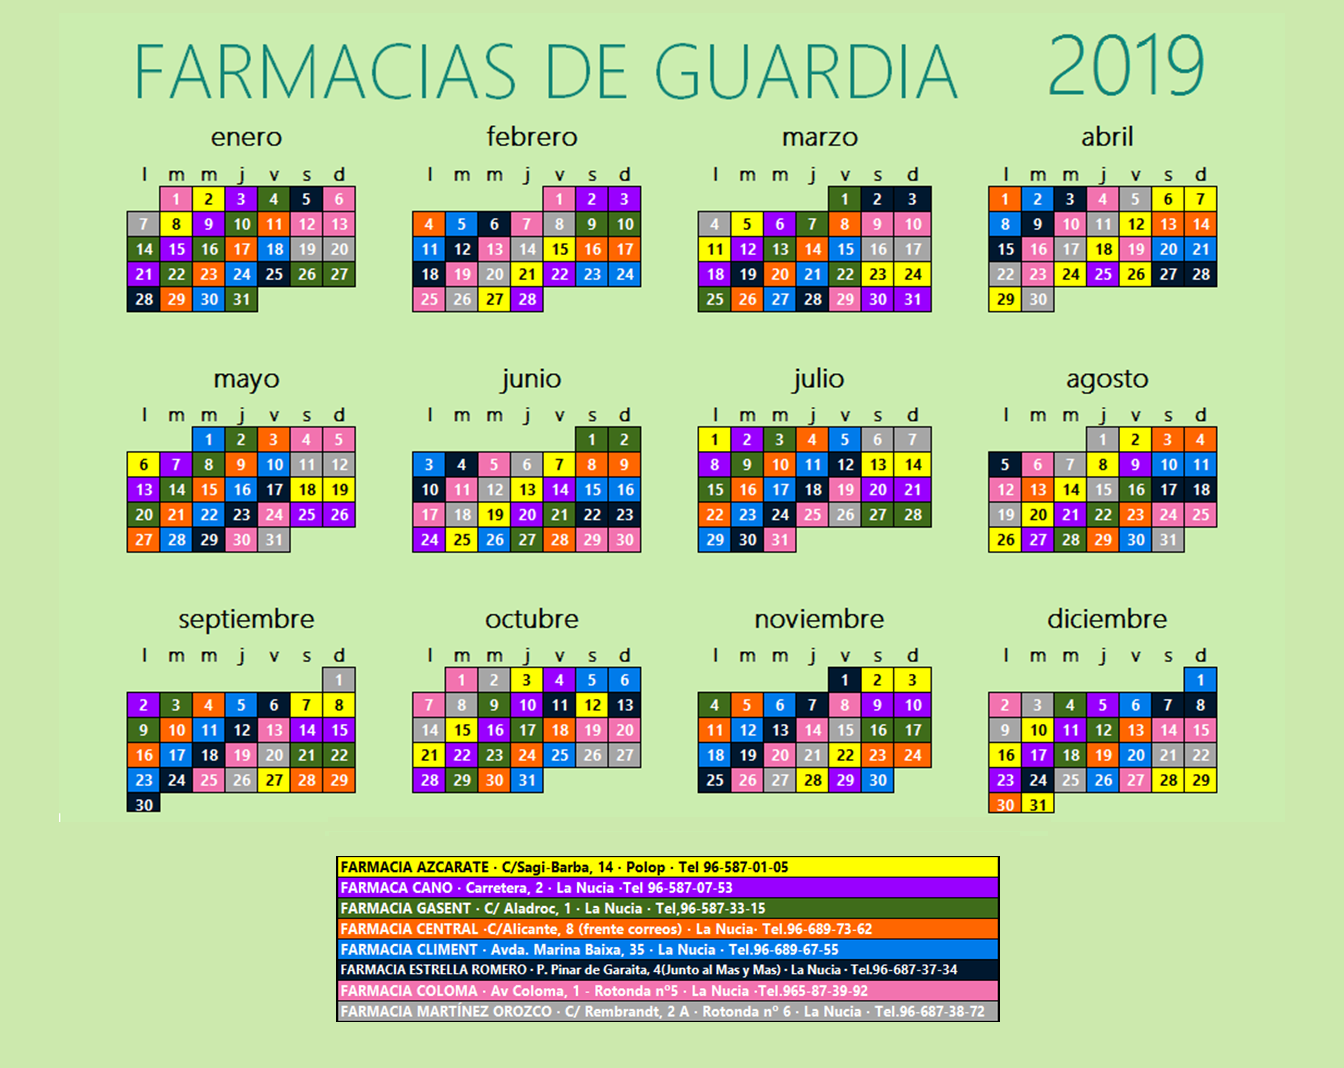 Farmacias de guardia 2019